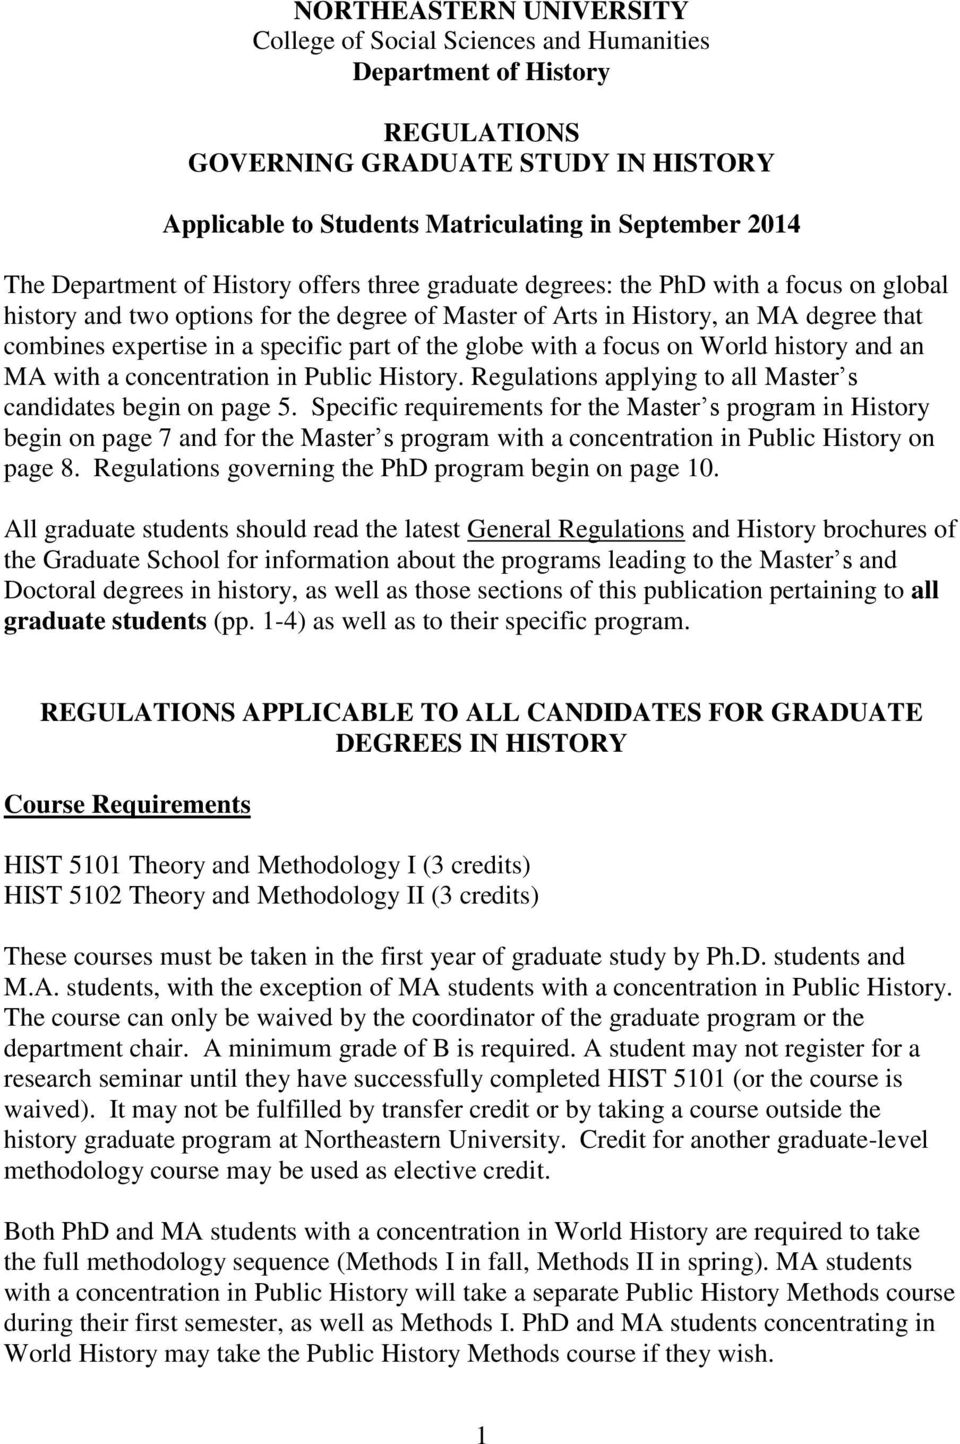 specific part of the globe with a focus on World history and an MA with a concentration in Public History. Regulations applying to all Master s candidates begin on page 5.